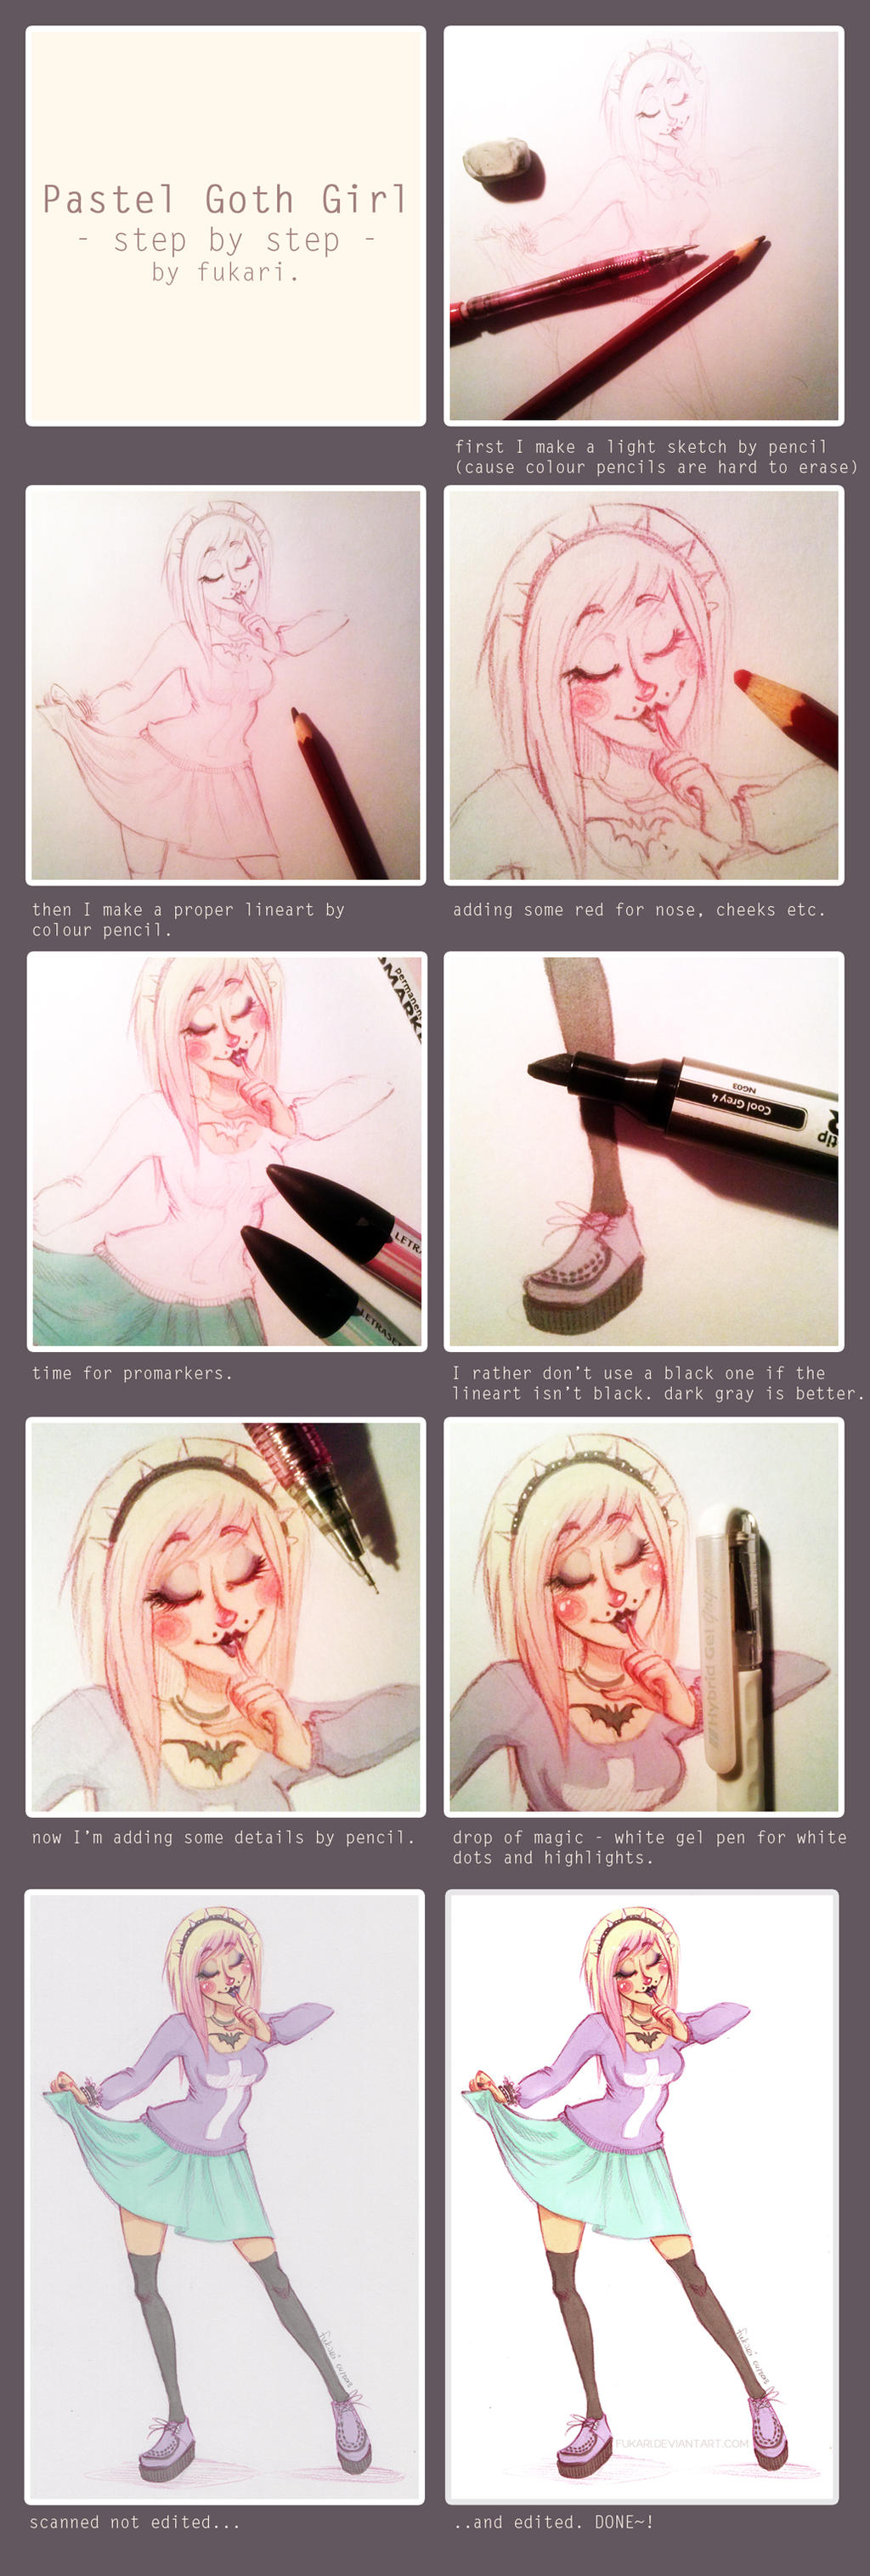 pastel goth girl - step by step by Fukari